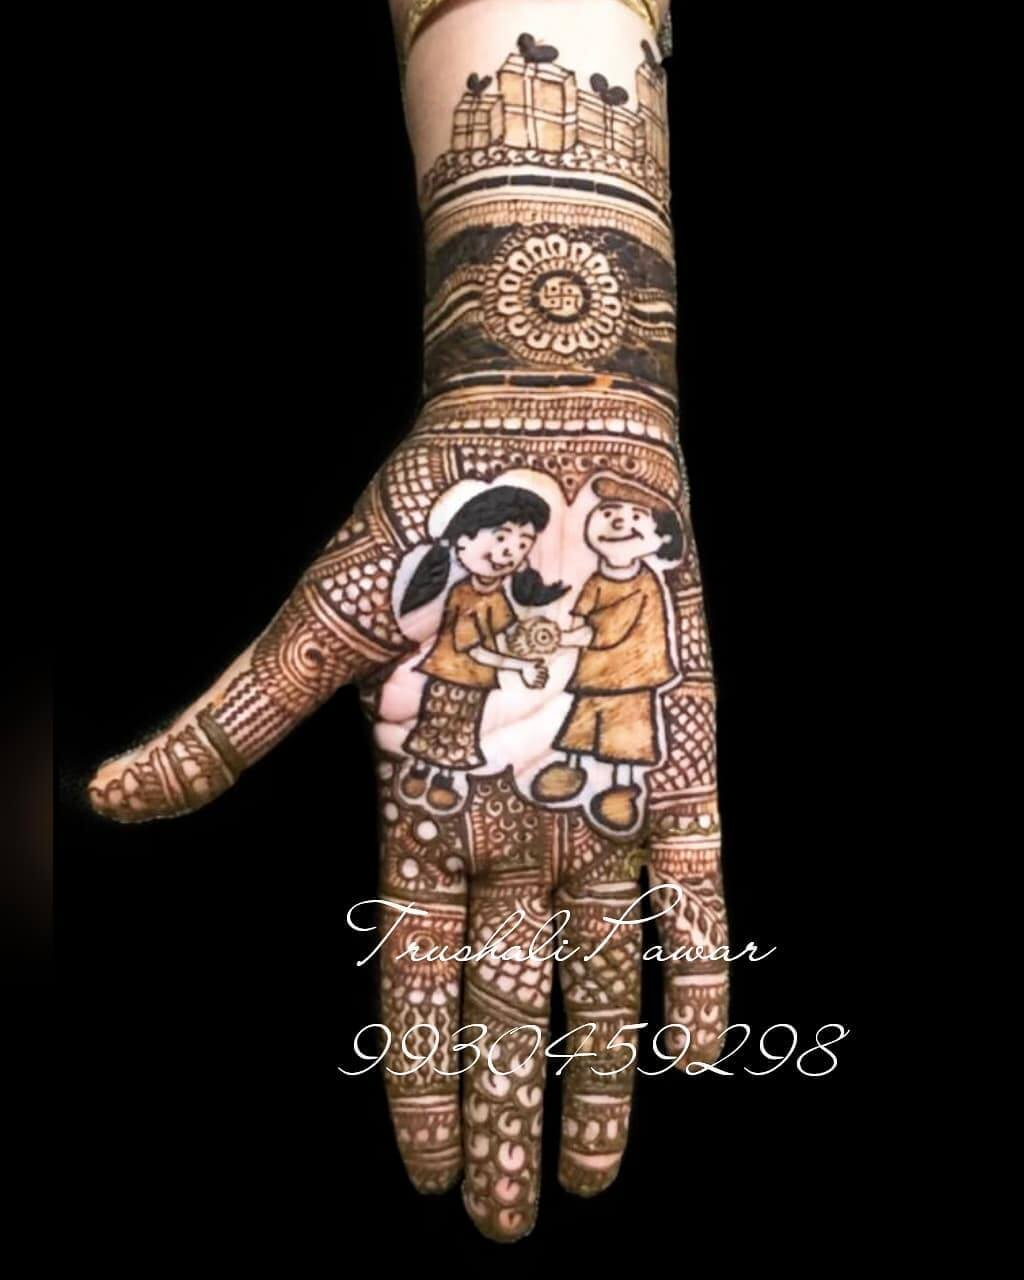 Show off your Love Latest Mehndi Designs for Raksha Bandhan